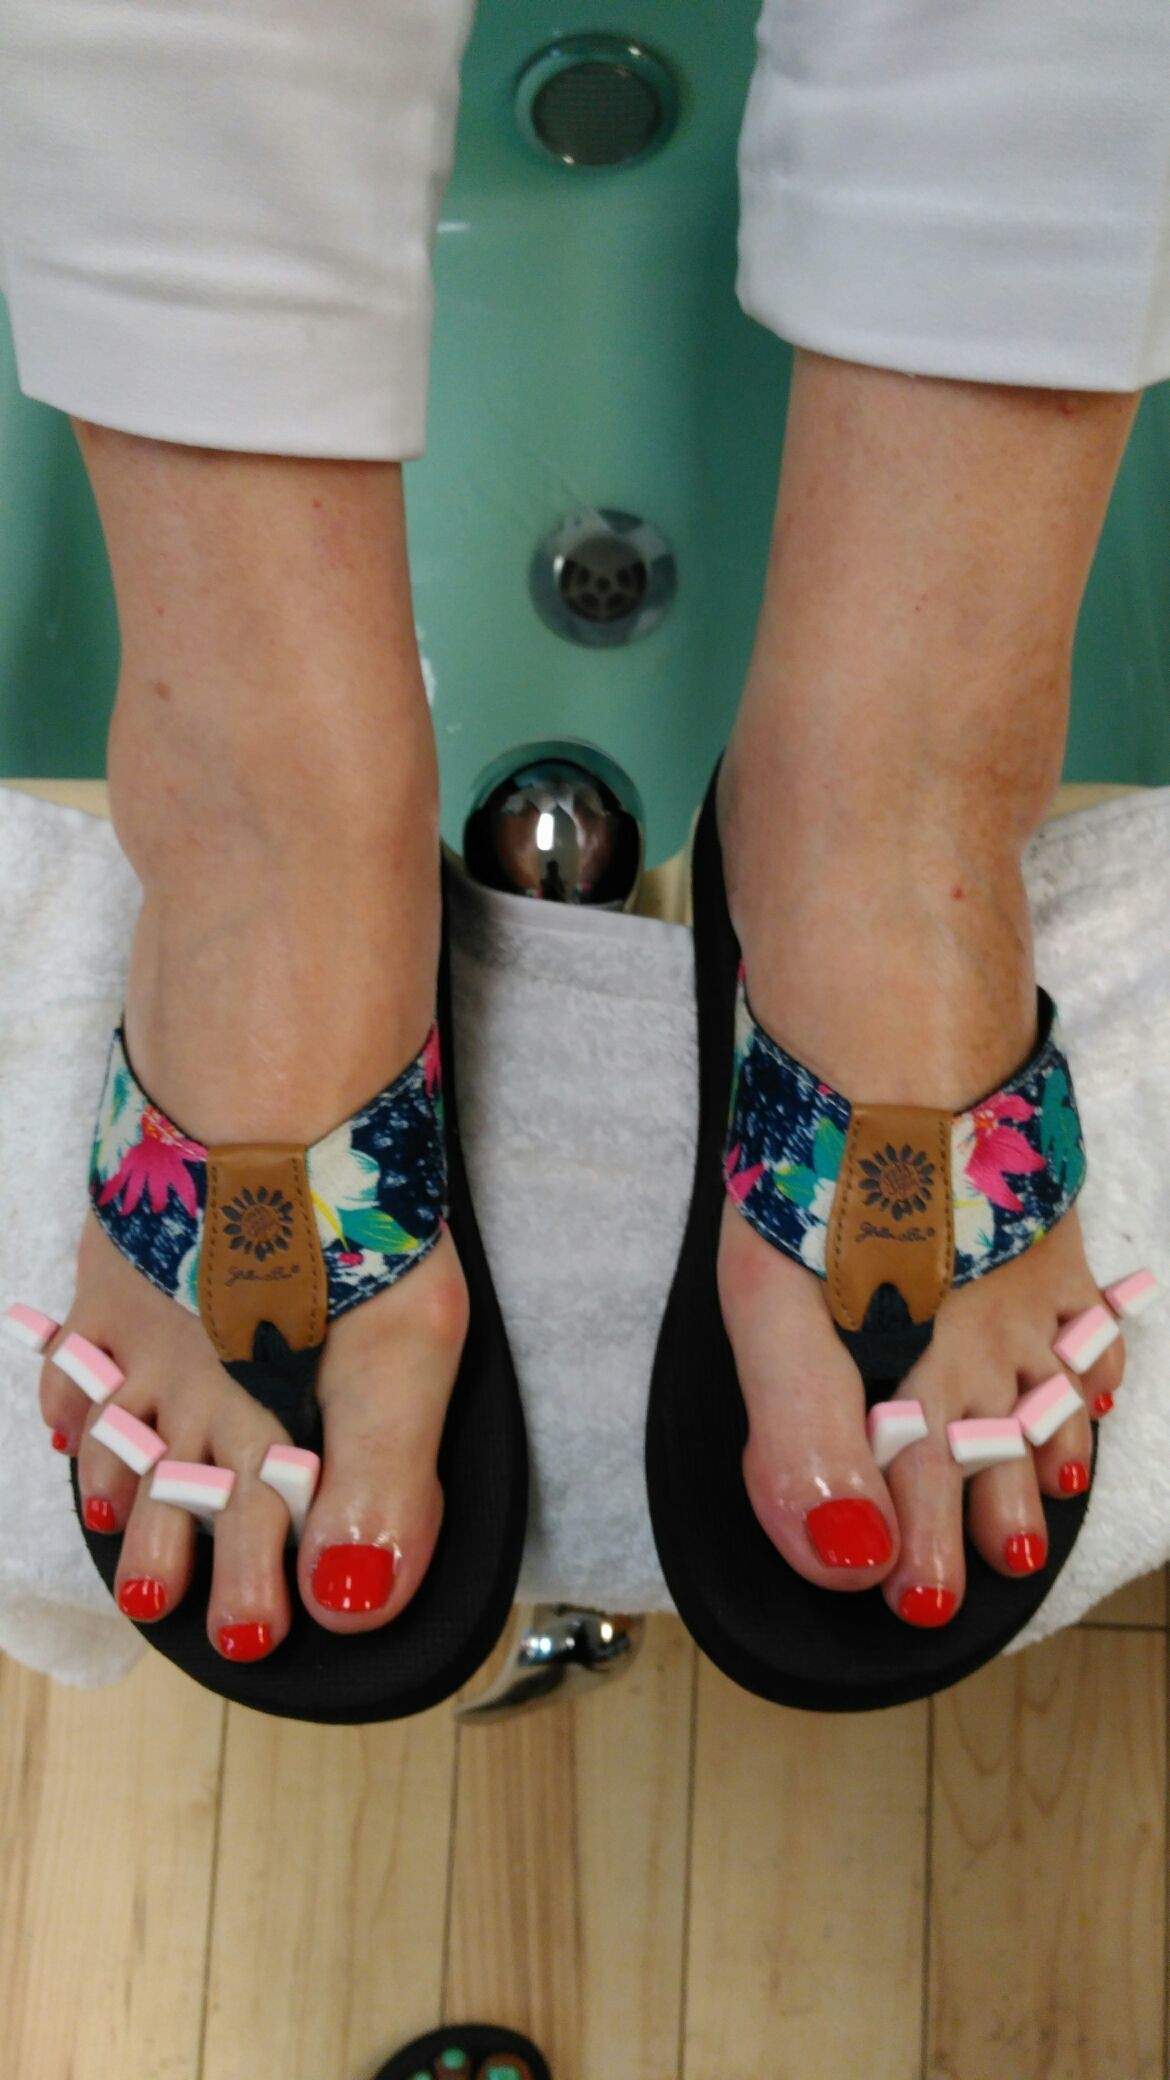 Thank u so much Ms. Gene for getting your #toes done with #ThaPolishQueen today! #ComeSeeMe #PrettyGurlsFeet #CleanBlackMasterNailTech #IDoNotRush #ITakeMyTime #UrMoneyWillBeWellSpent #UrToesMustBePerfectBeforeYouLeave #ComeExperienceMyHomemadeScrub #SpaologyNailSpa #ISupportBlackOwnedBusinesses Spaology Nail Spa & More 3000 Kavanaugh Blvd, Ste. C LR, AR 72205 To book your appointment email me @ PrettyGurlsFeet@gmail.com or call me at the salon @ 501.265.0303 or to book directly and purchase your service... Go to my website @ me on IG: @ms_beautiful_feet #ImWaitingOnYou